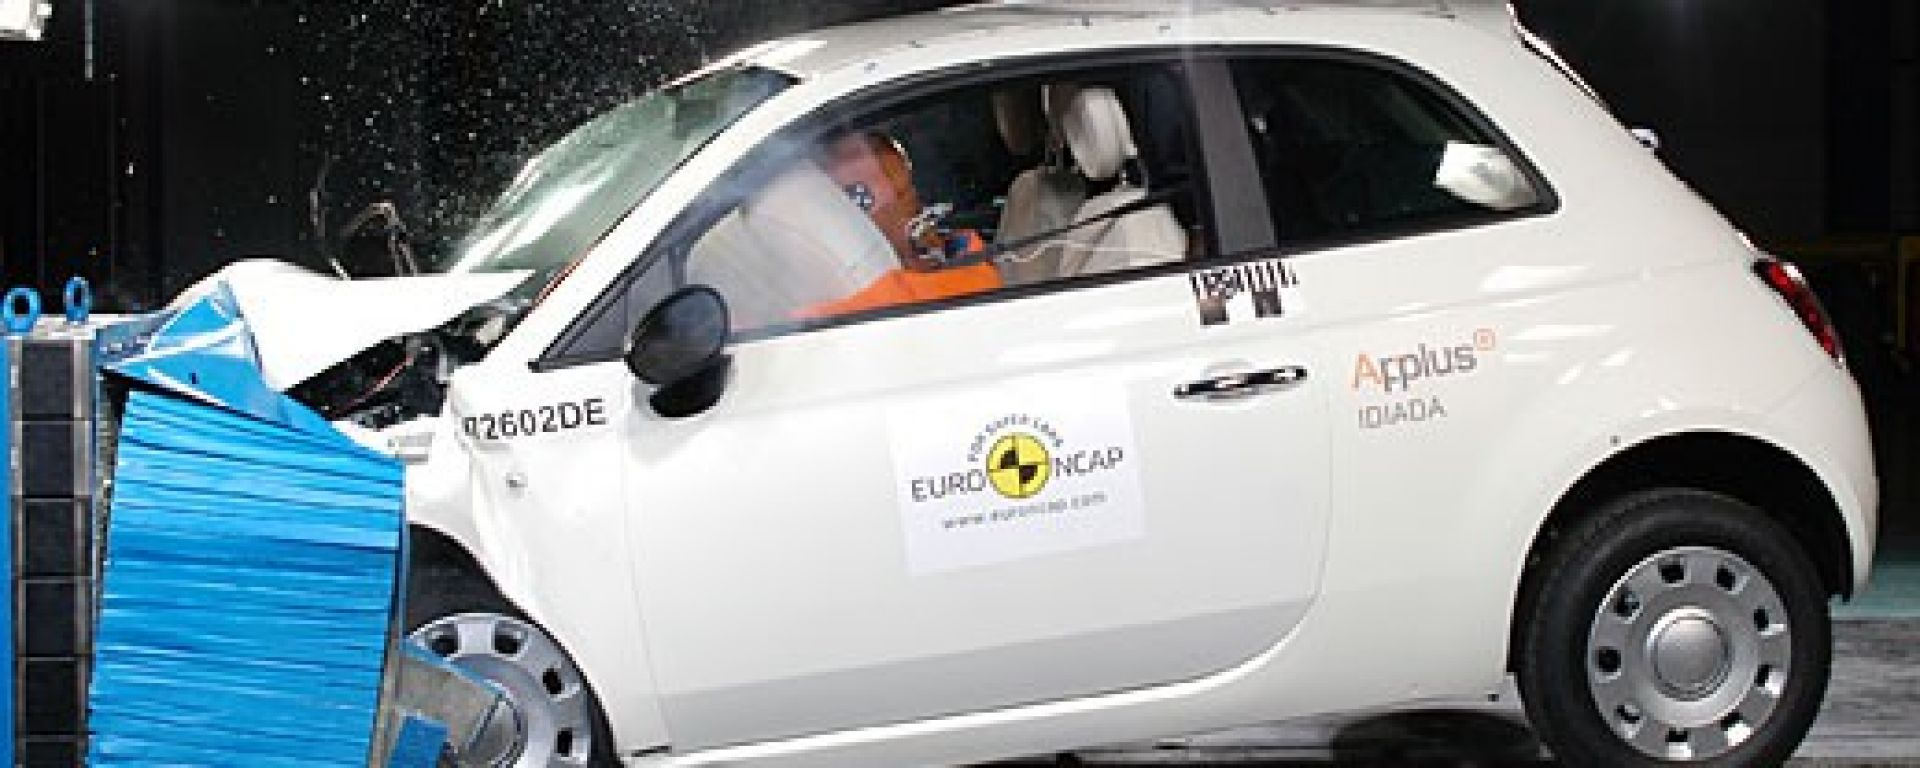 Crash Test: Italia batte Francia 5 a 4